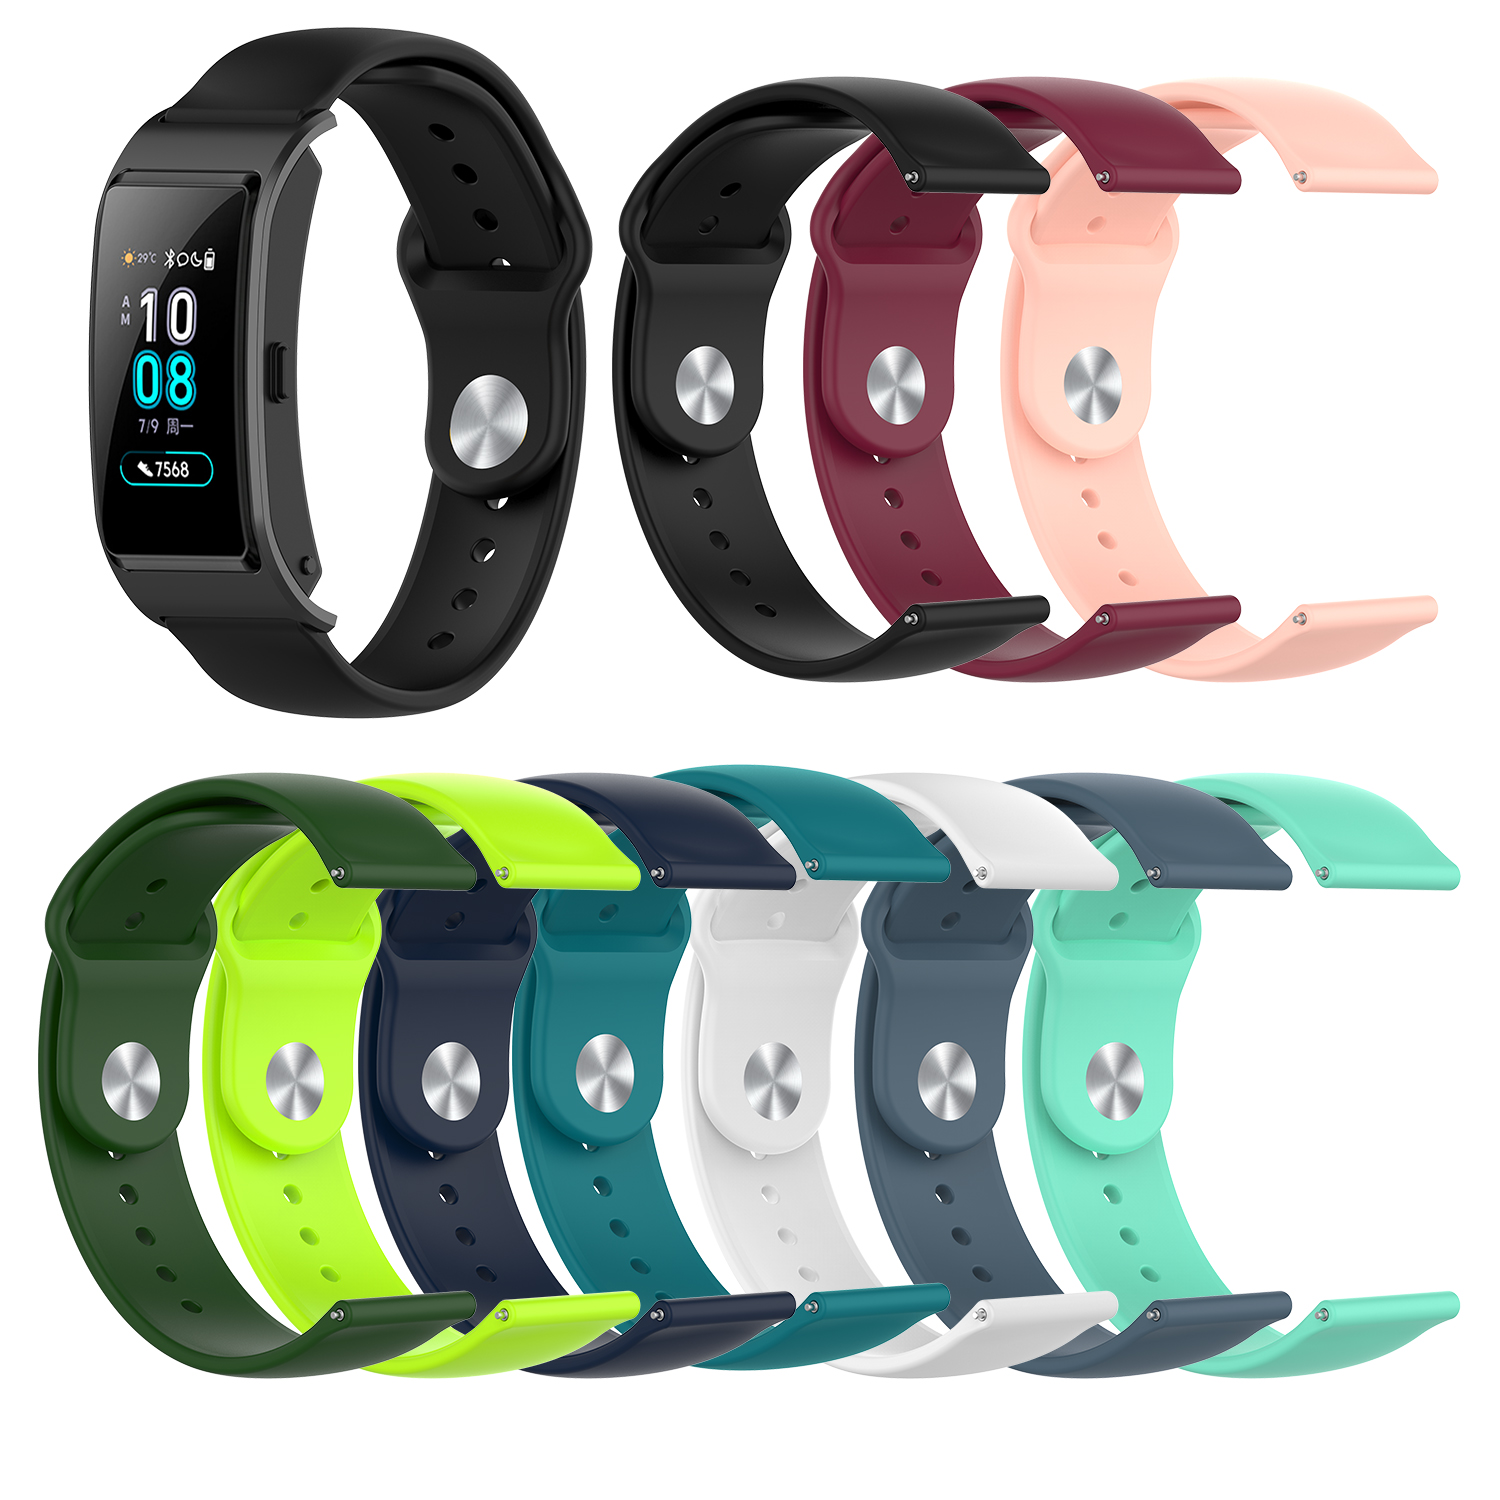 18mm Universal Watch Strap For Huawei B5/S1 Fitness Watche Band Fossil Q Gen4 Venture Huawwei Honour 1 Breathless Wristband